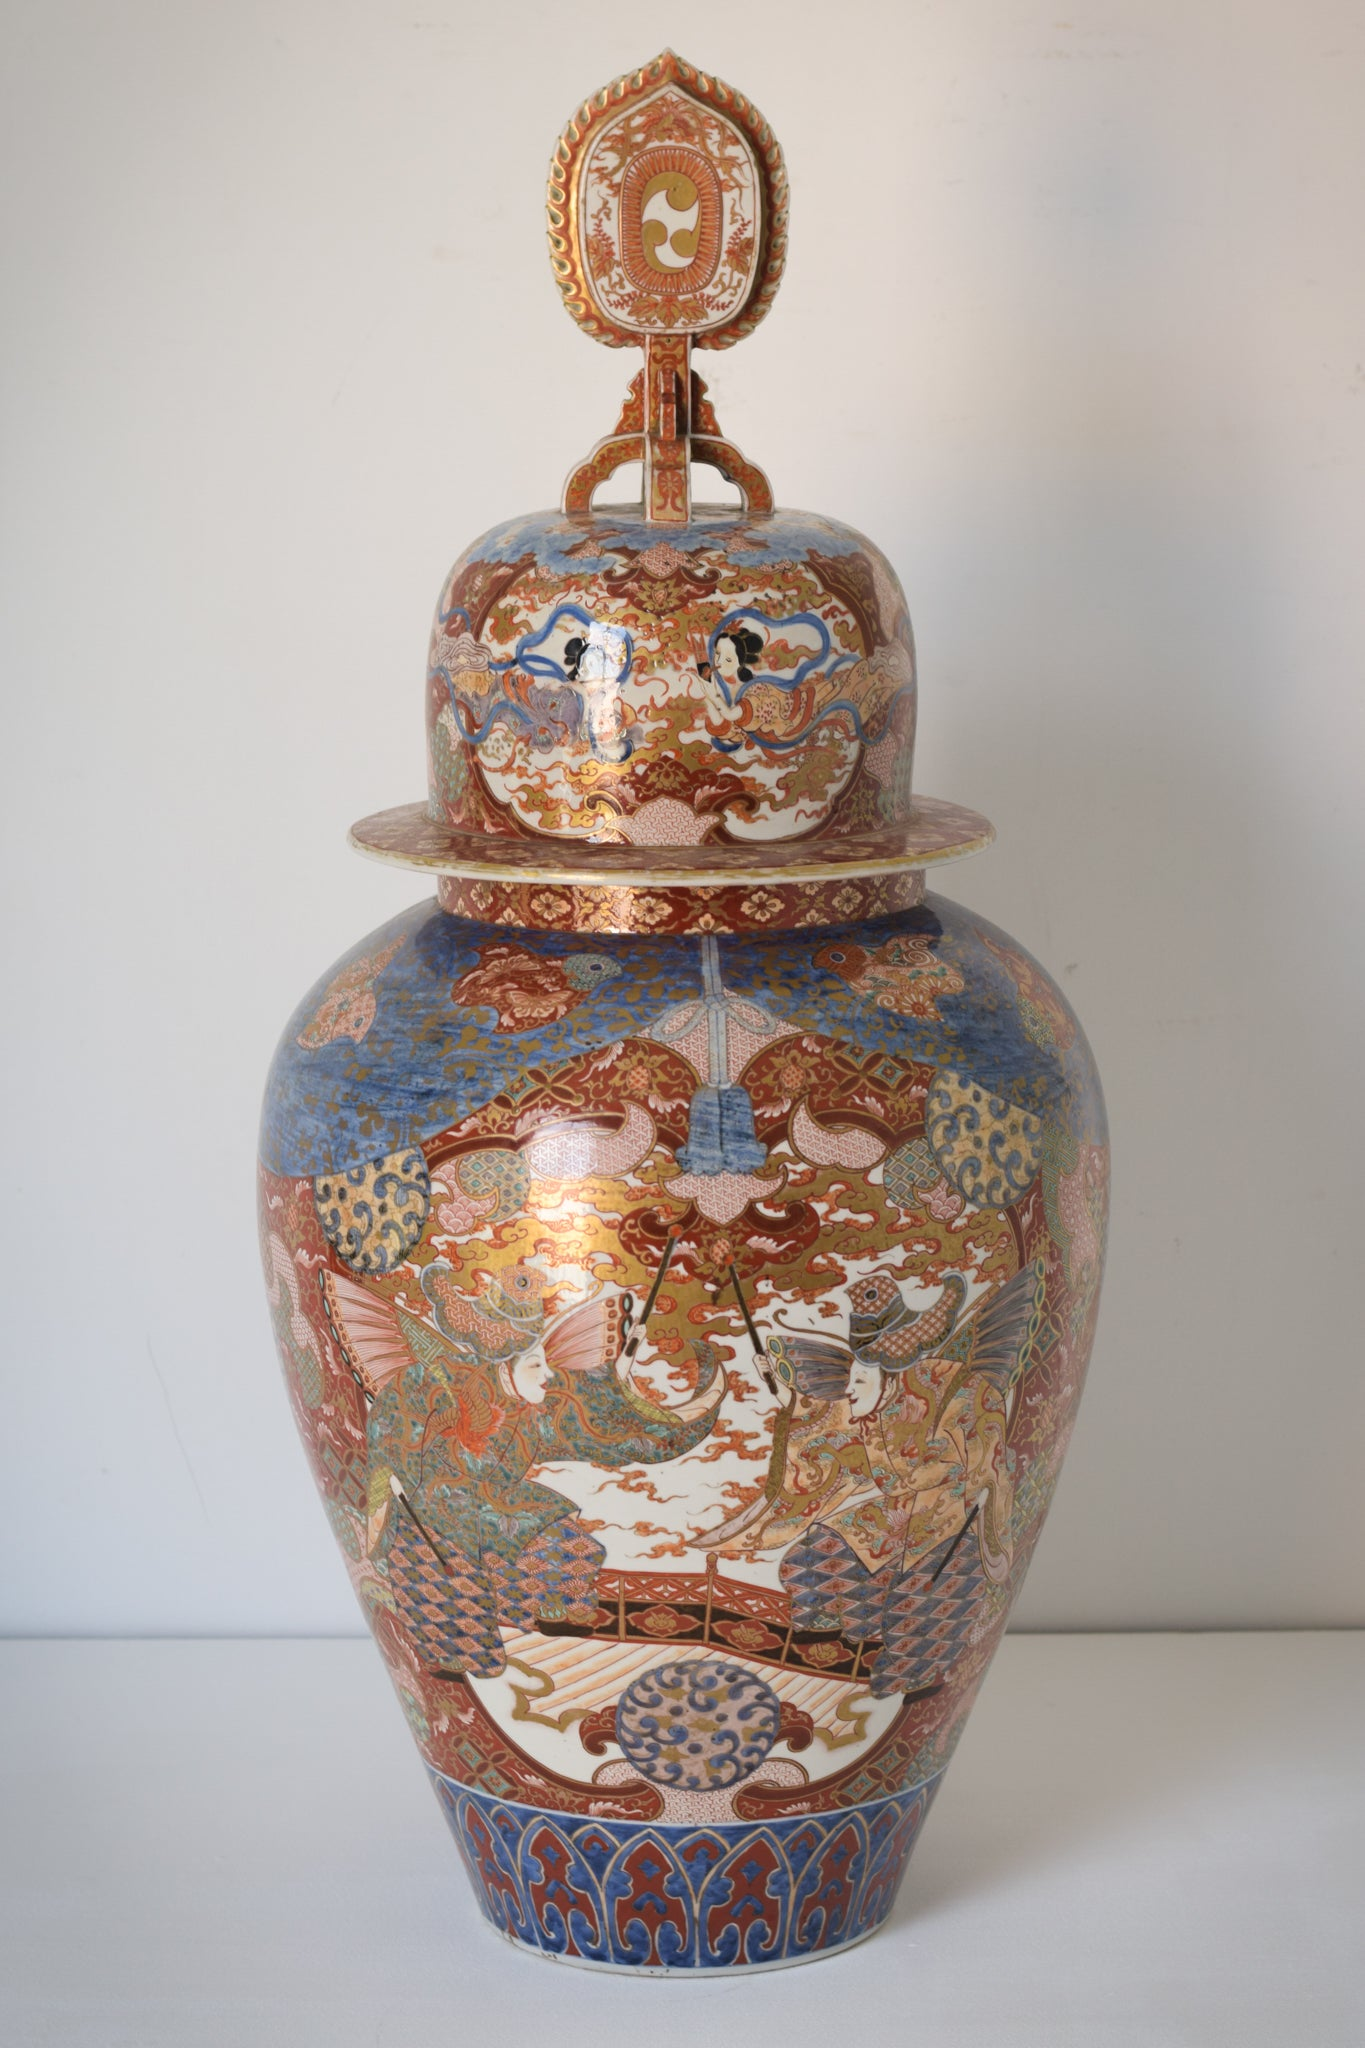 Large Arita Jar and Lid decorated with images of Samurais and Geishas